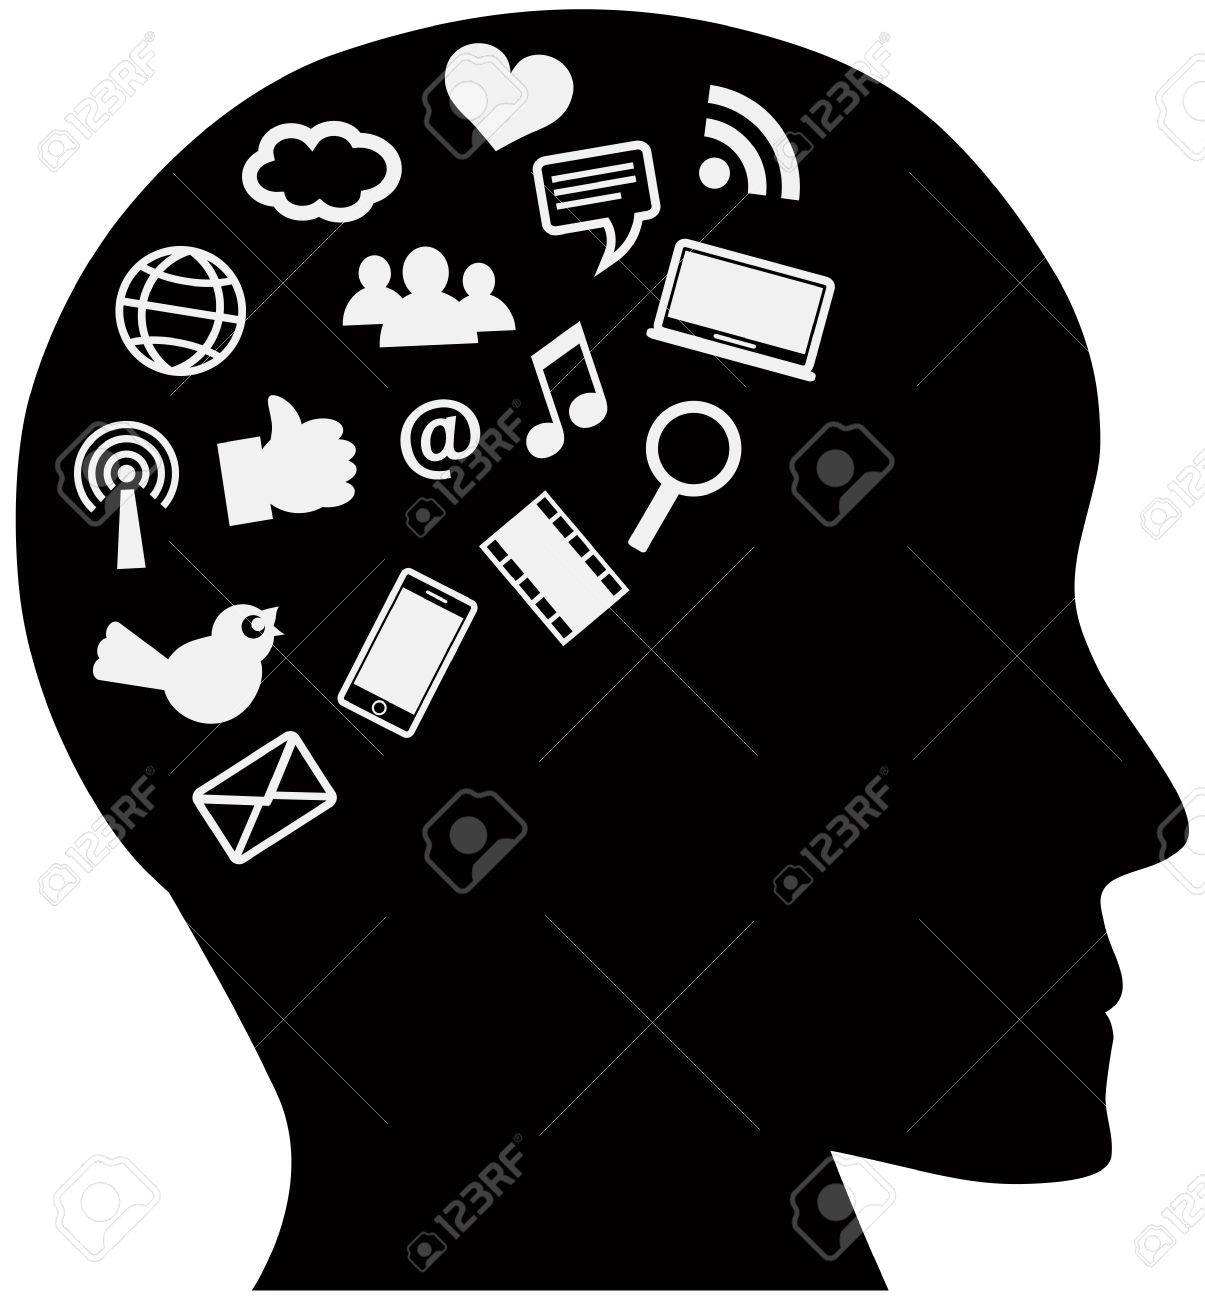 Human Head Silhouette with Social Media Internet Icons Illustration Isolated on White Background Stock Vector - 17360674